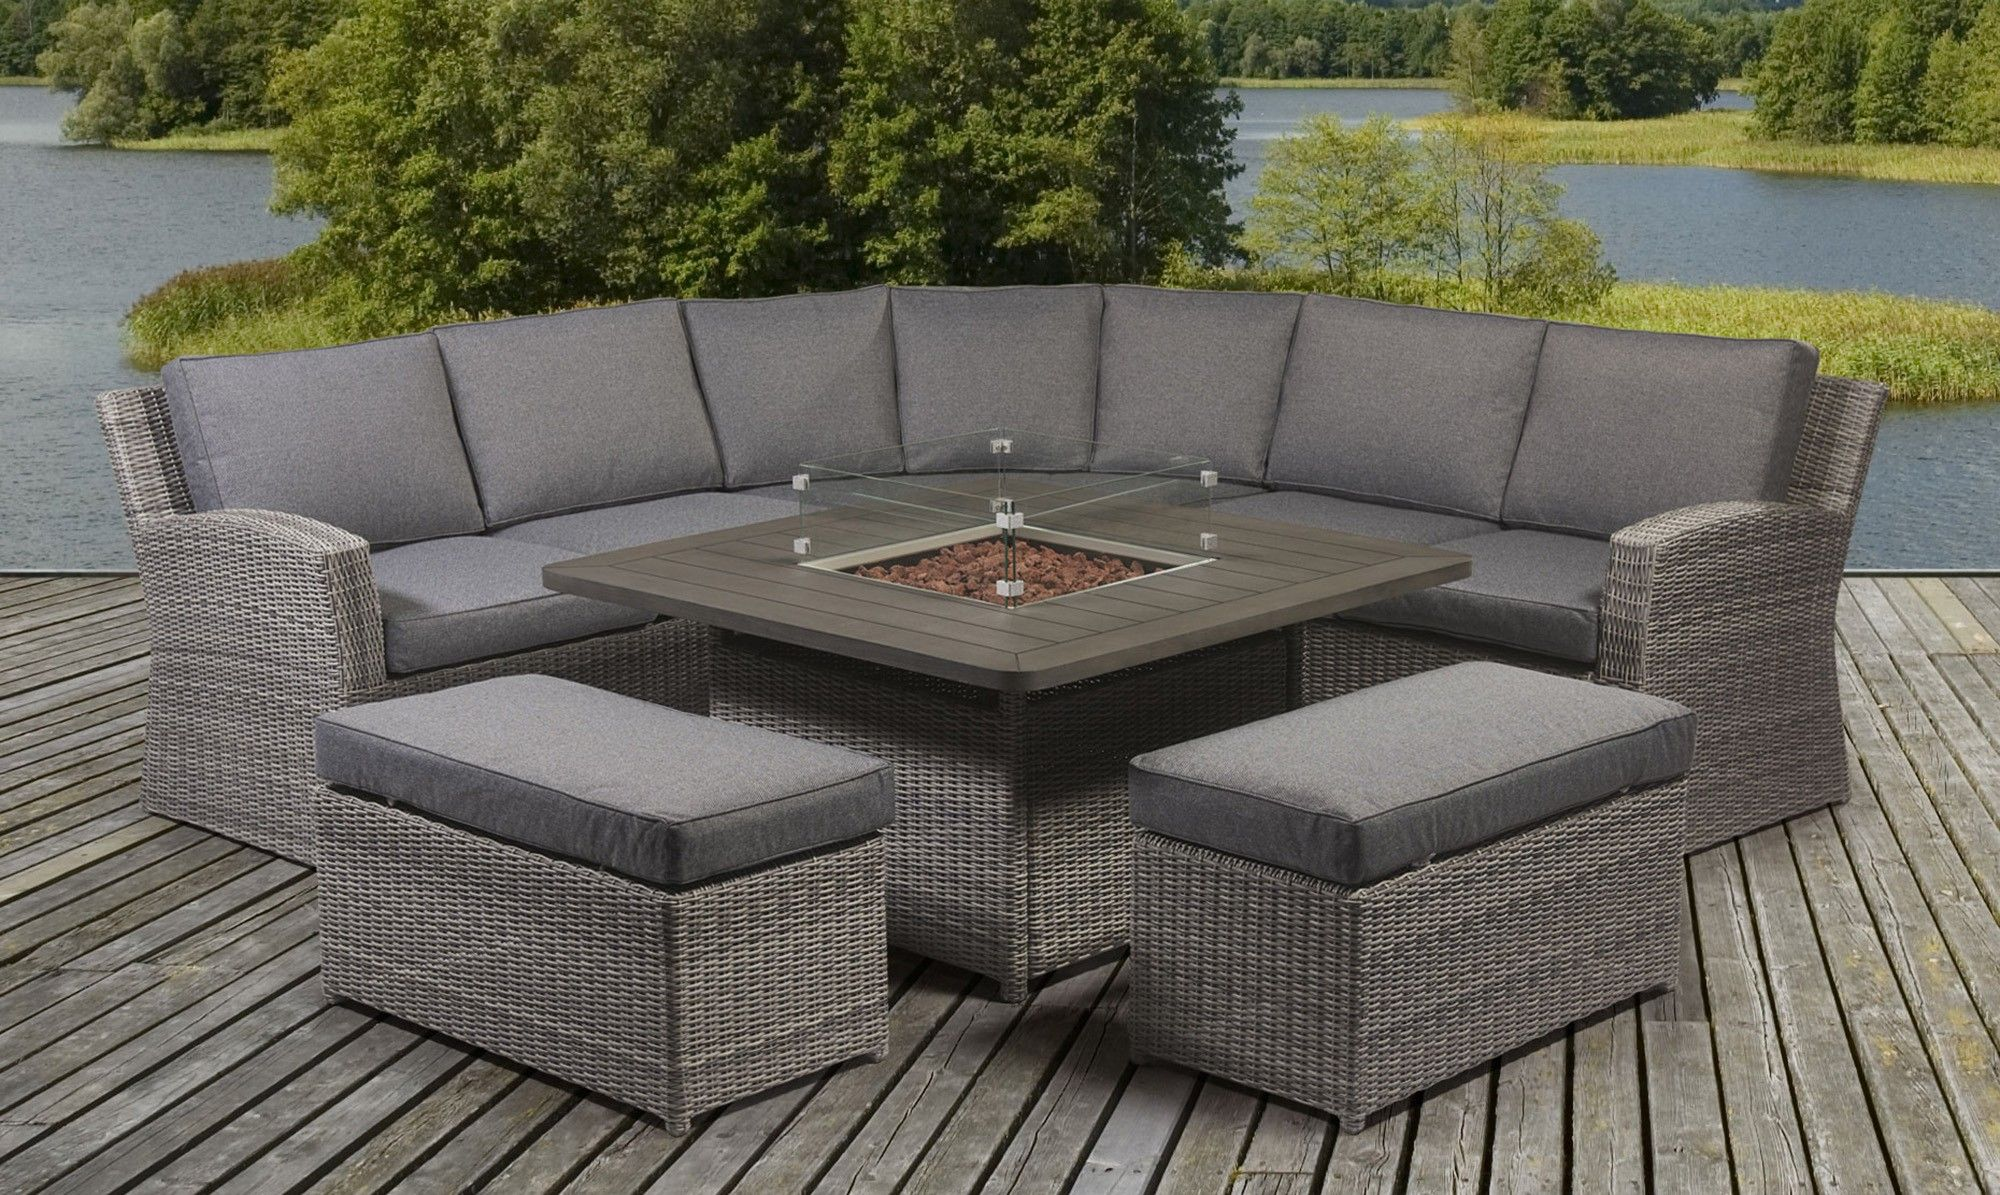 This Curved Dining Set For The Garden Has The Added Luxury Of A